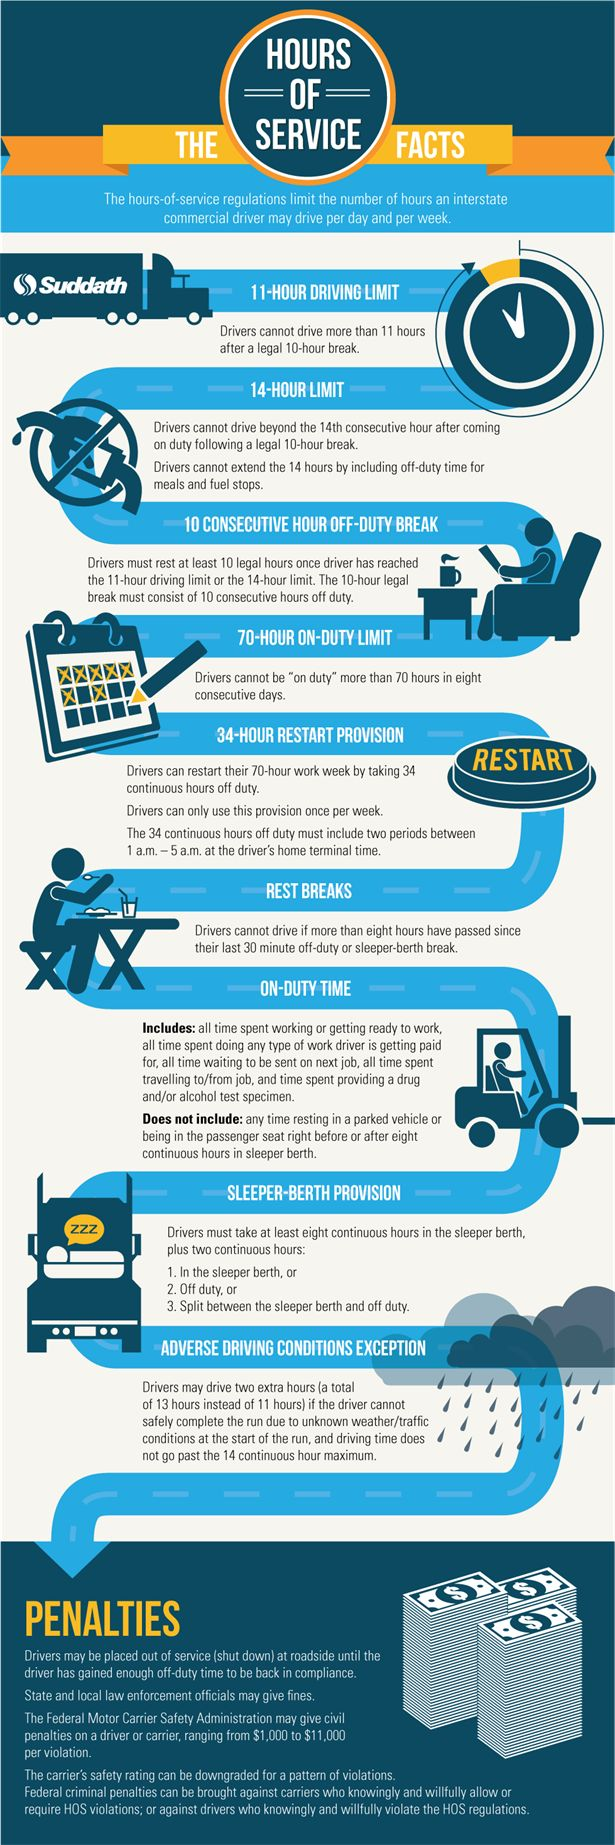 The U.S. Department of Transportation's Federal Motor Carrier Safety Administration (FMCSA) implemented new #regulations designed to improve safety for truck drivers and the motoring public. Check out this #infographic for more information on the new FMCSA regulations.